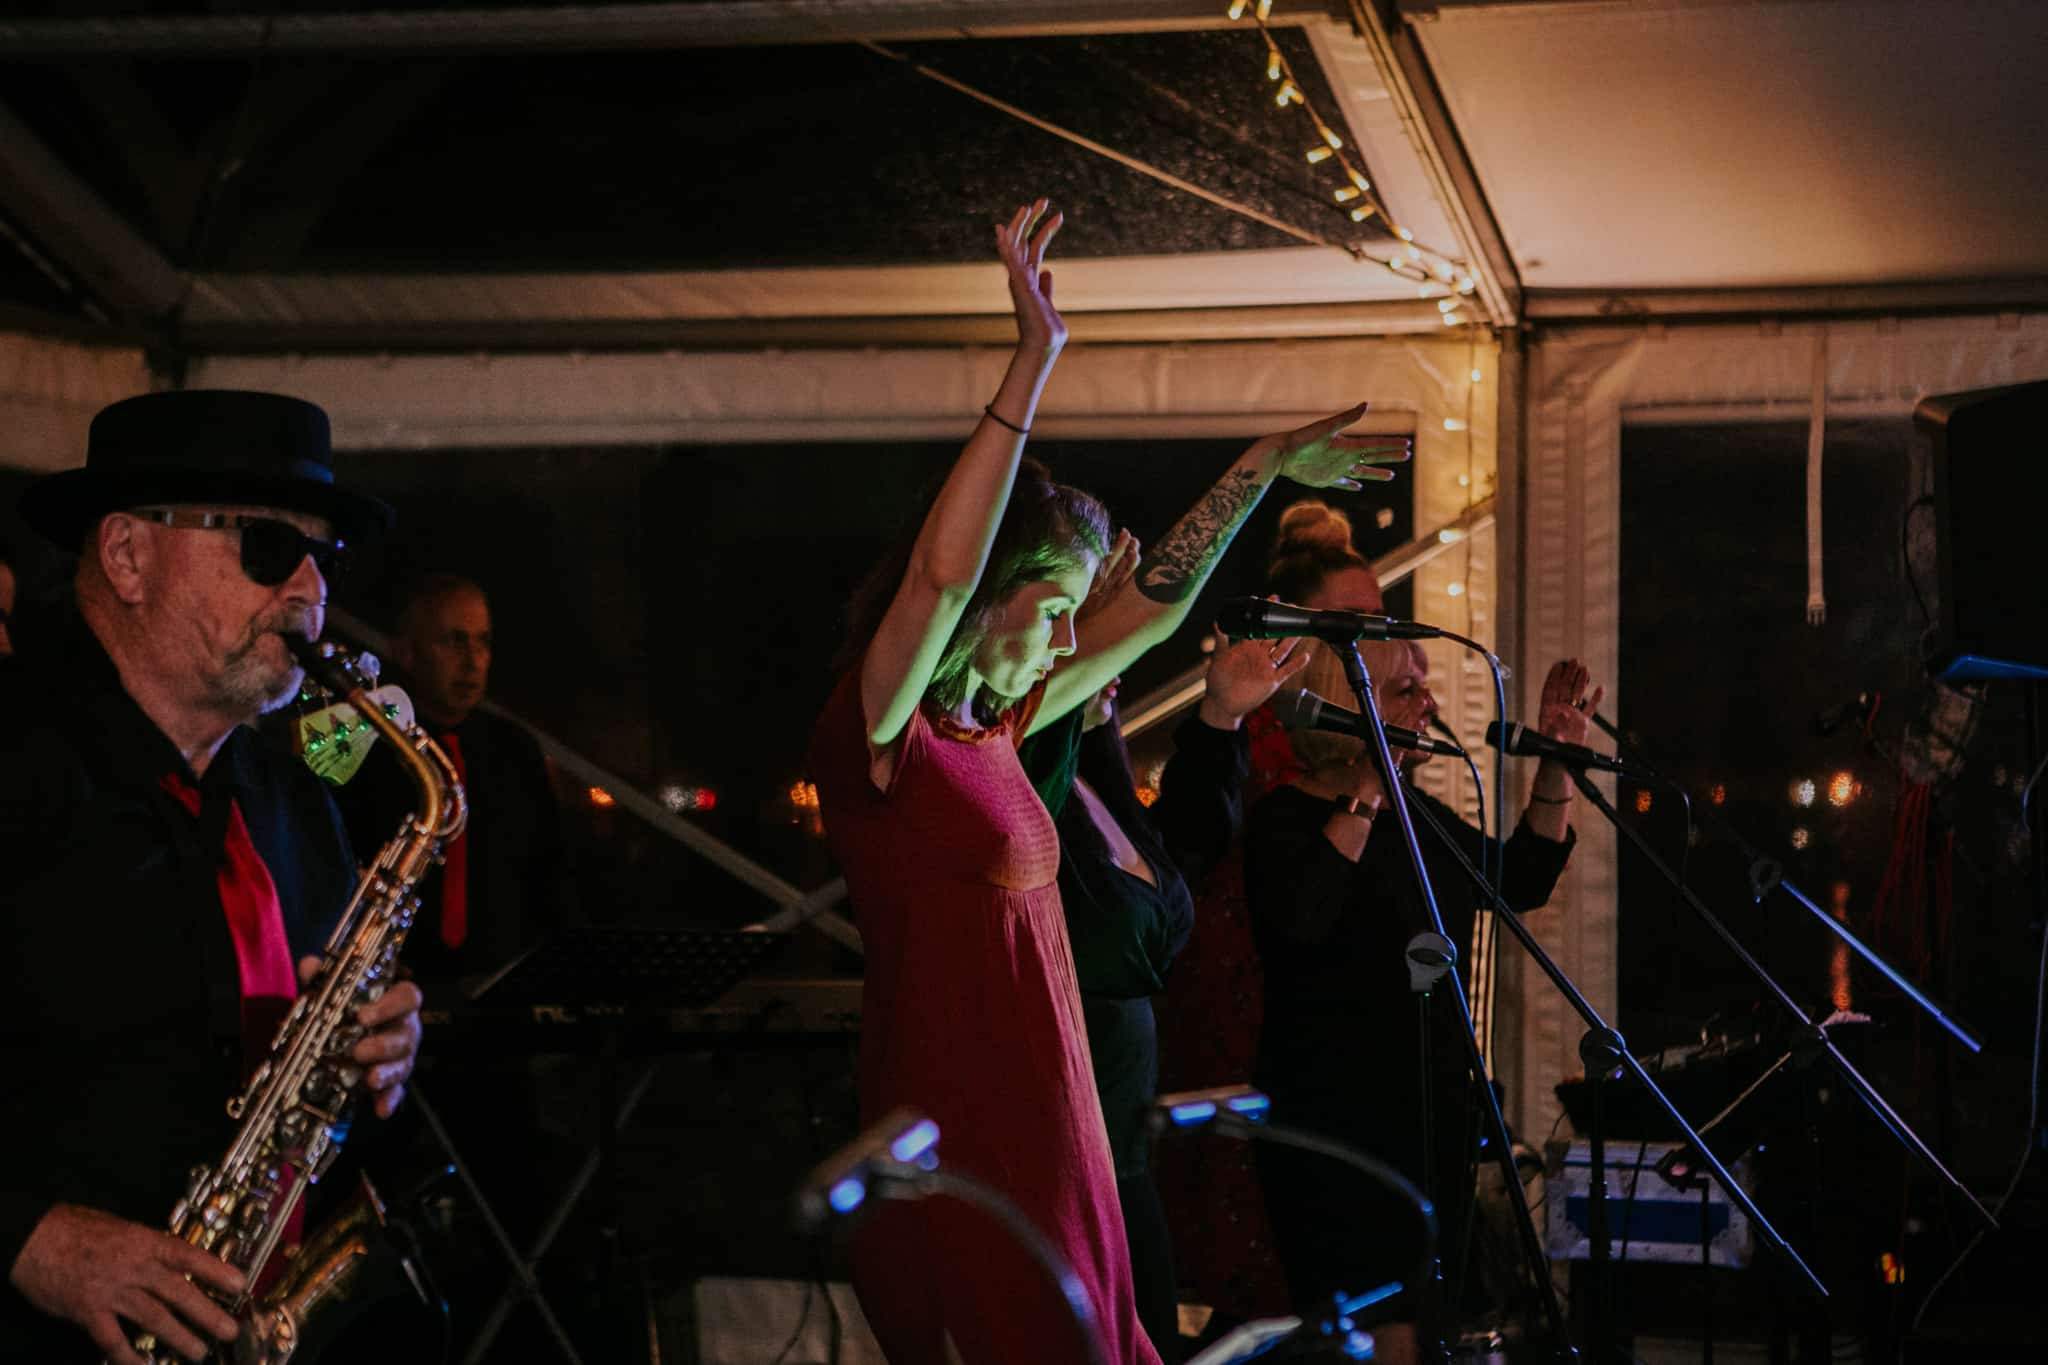 falmouth-week-at-the-working-boat-pub-live-music-events-falmouth-cornwall (108 of 114)